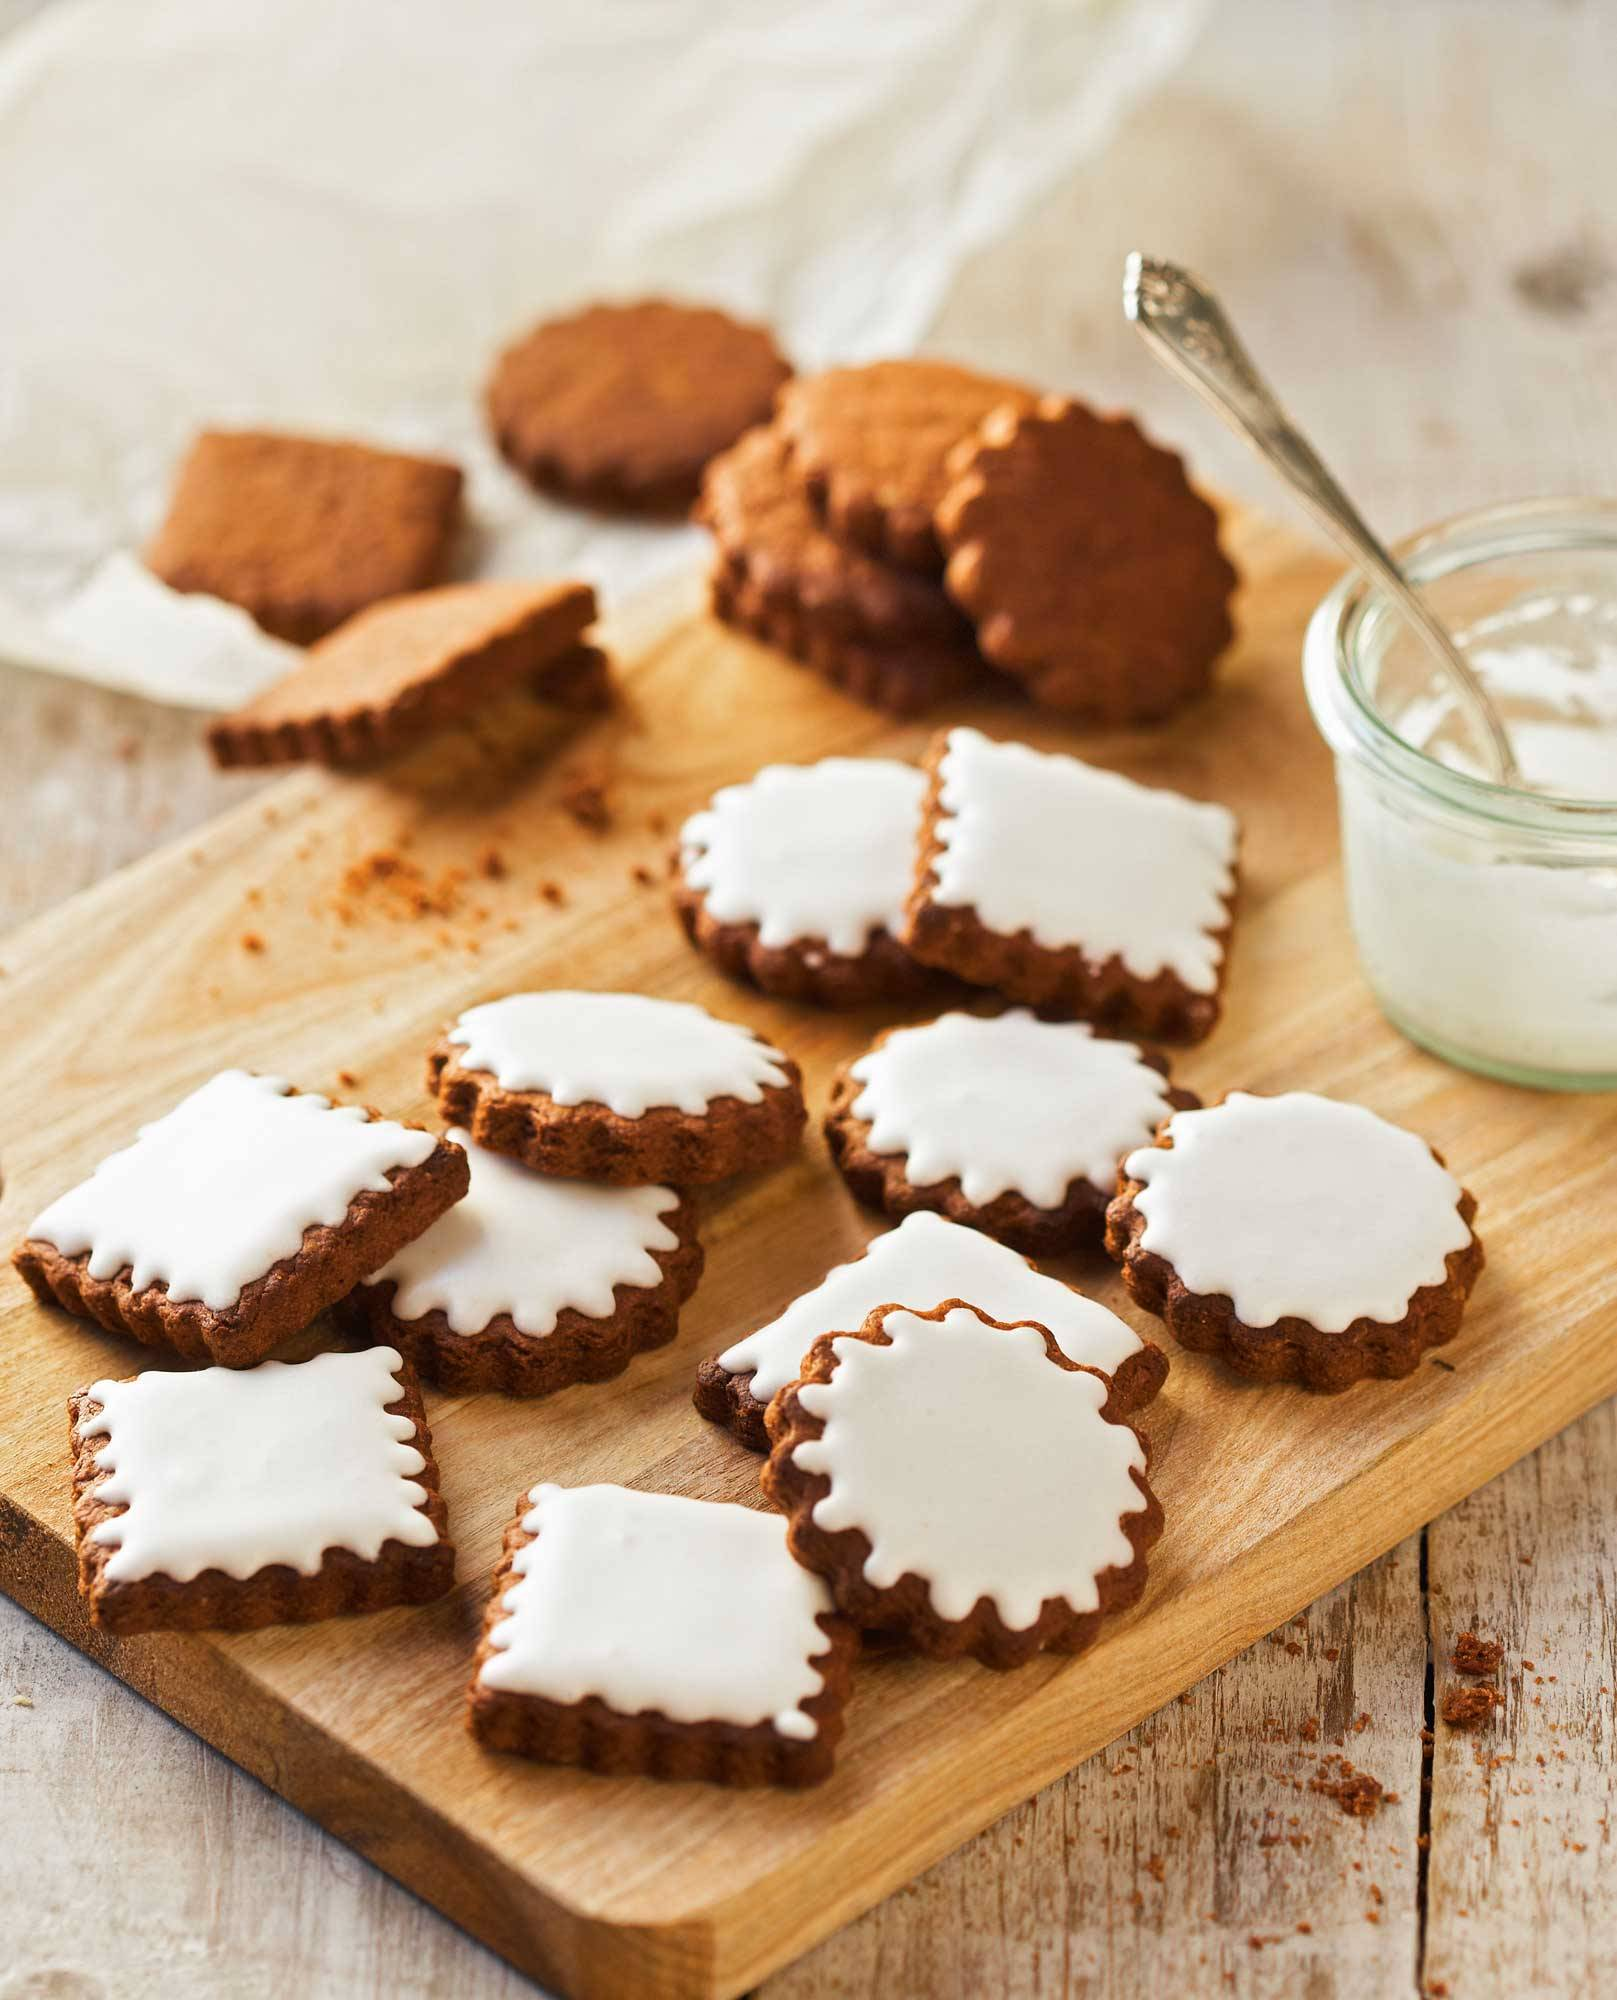 receta-galletas-chocolate 00426662